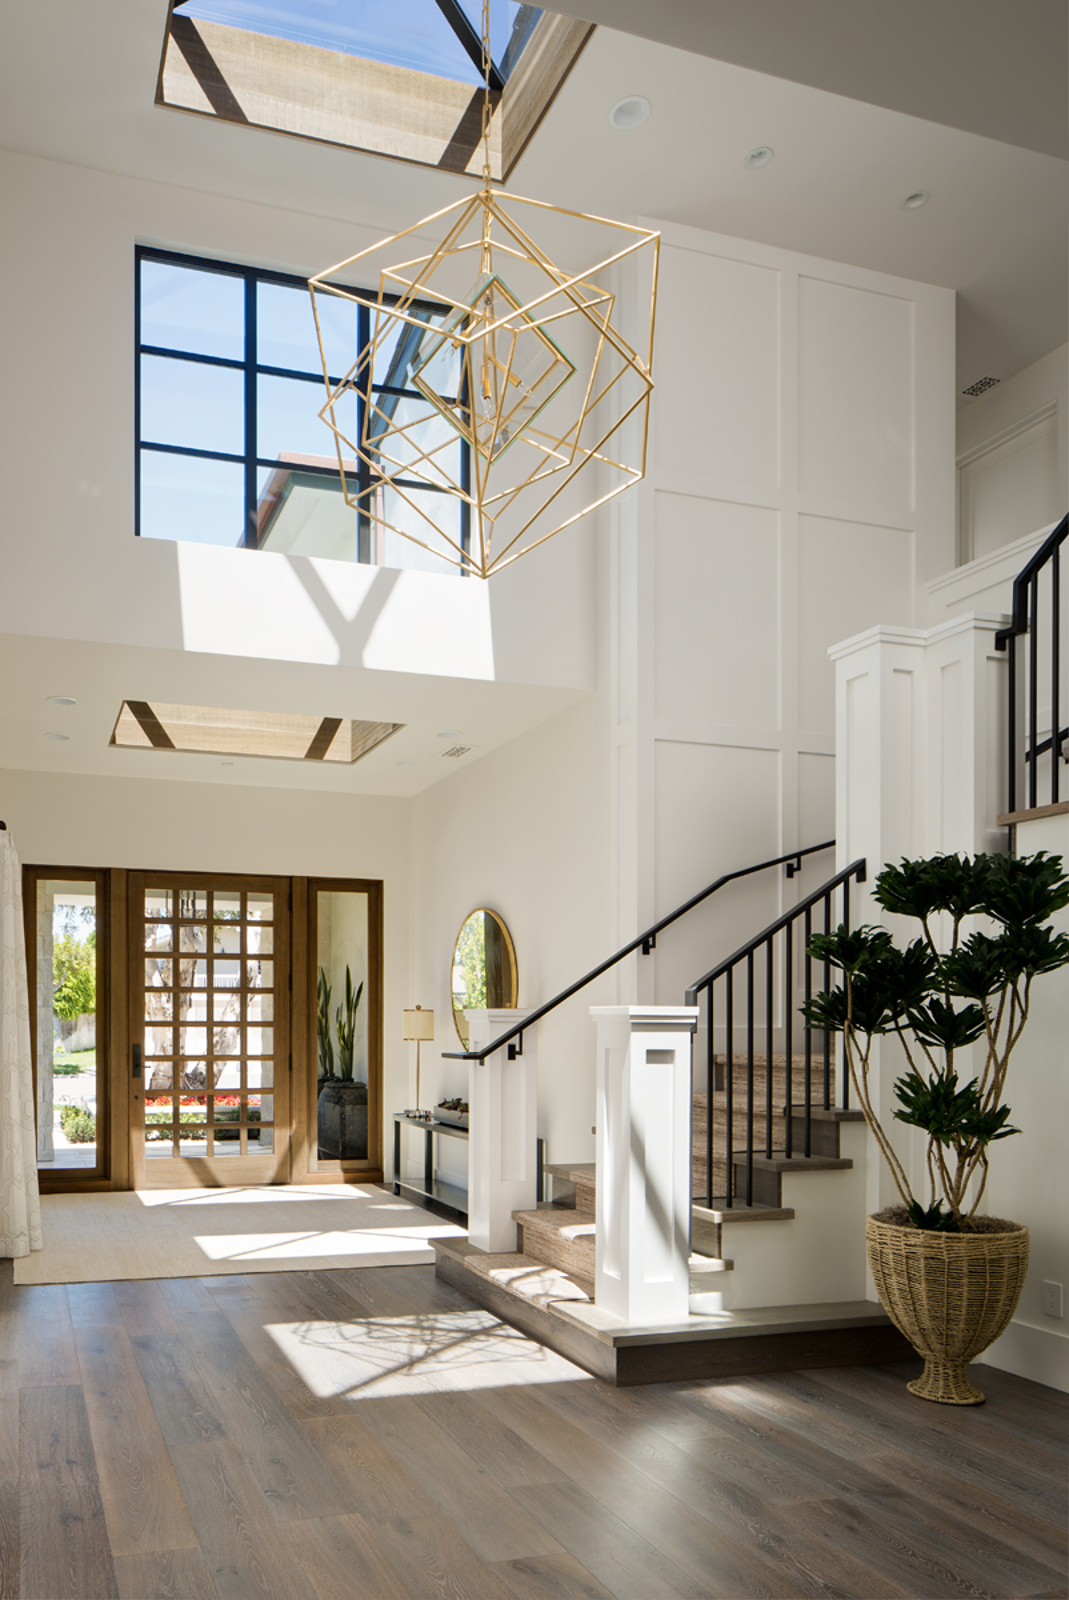 This light 'n airy Key West home by Brooke Wagner Design perfectly executes a grounding iron stair balustrade with a contrasting funky satin gold light fixture. Love! Image Via Brooke Wagner Design